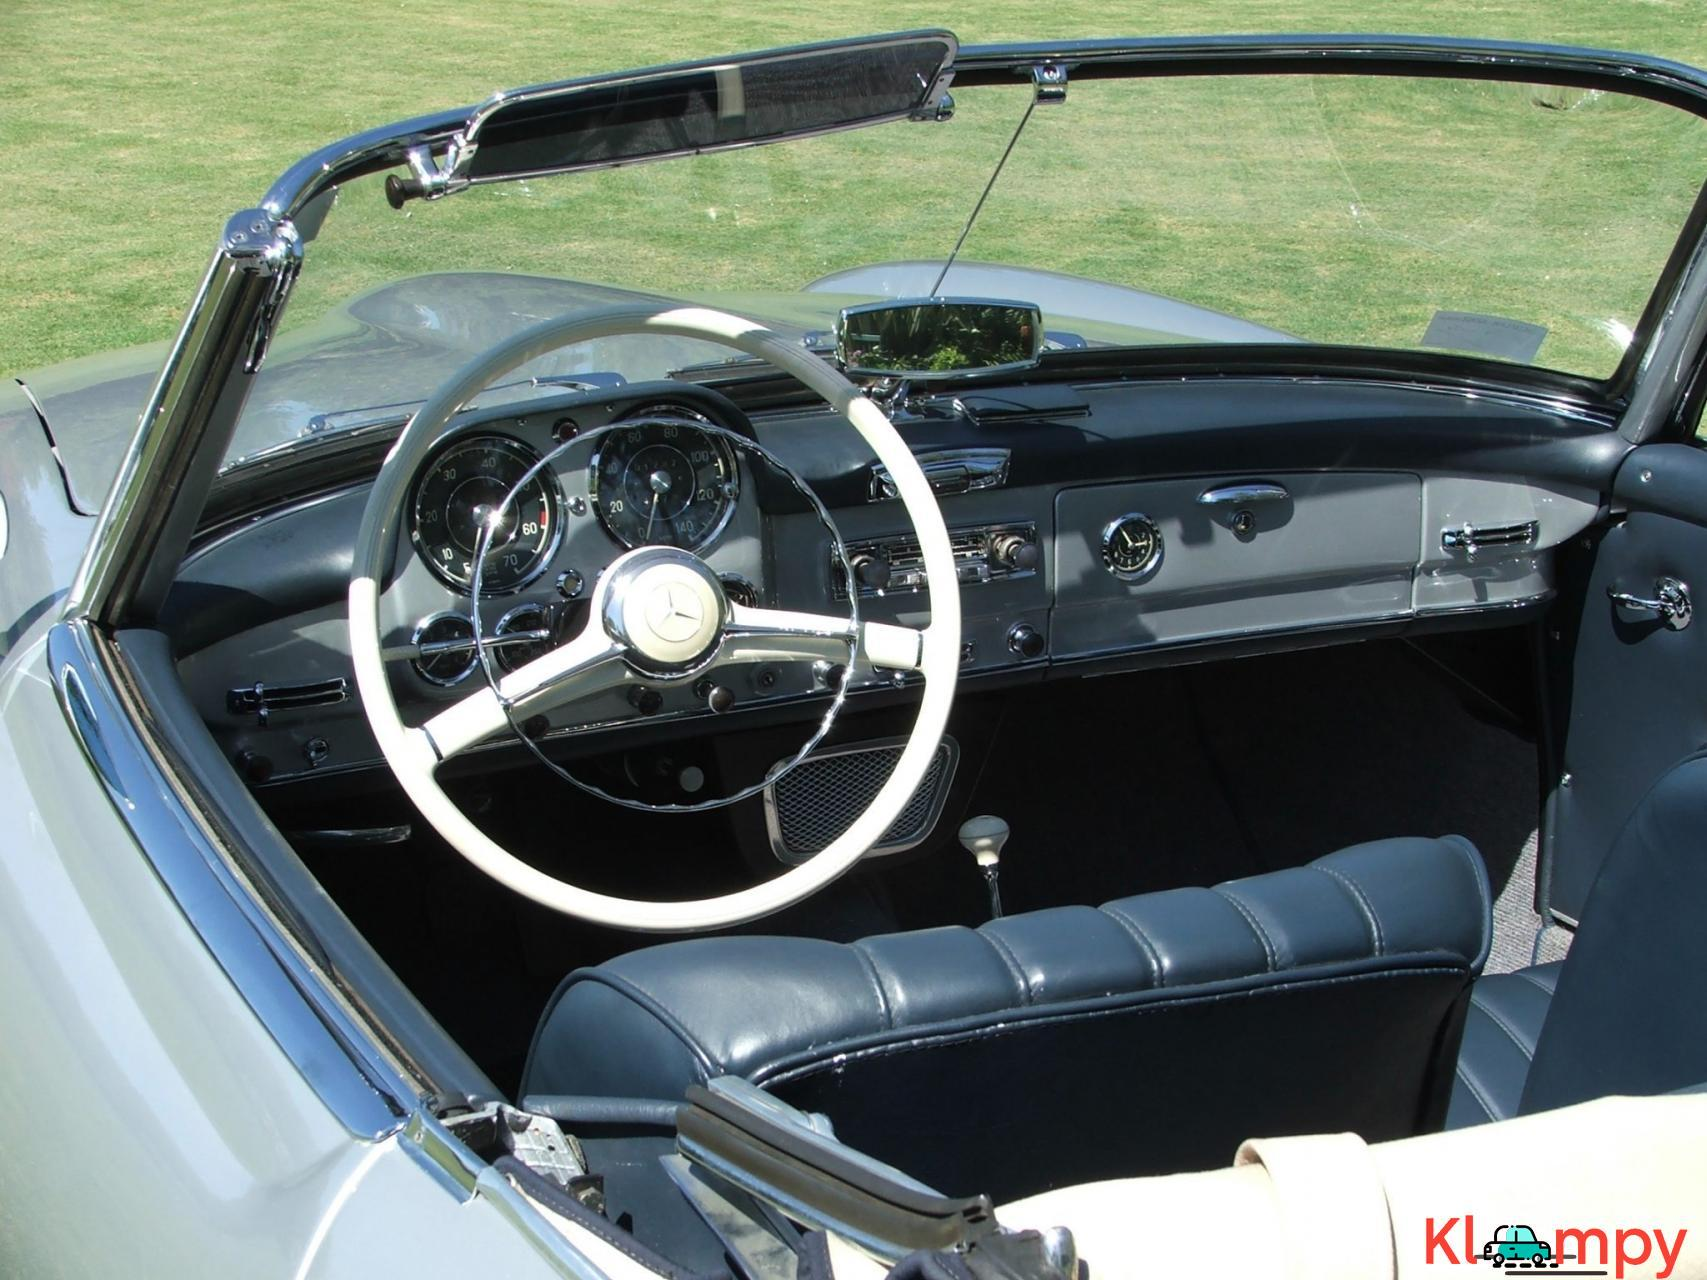 1957 Mercedes-Benz 190SL Brilliant Silver - 14/20